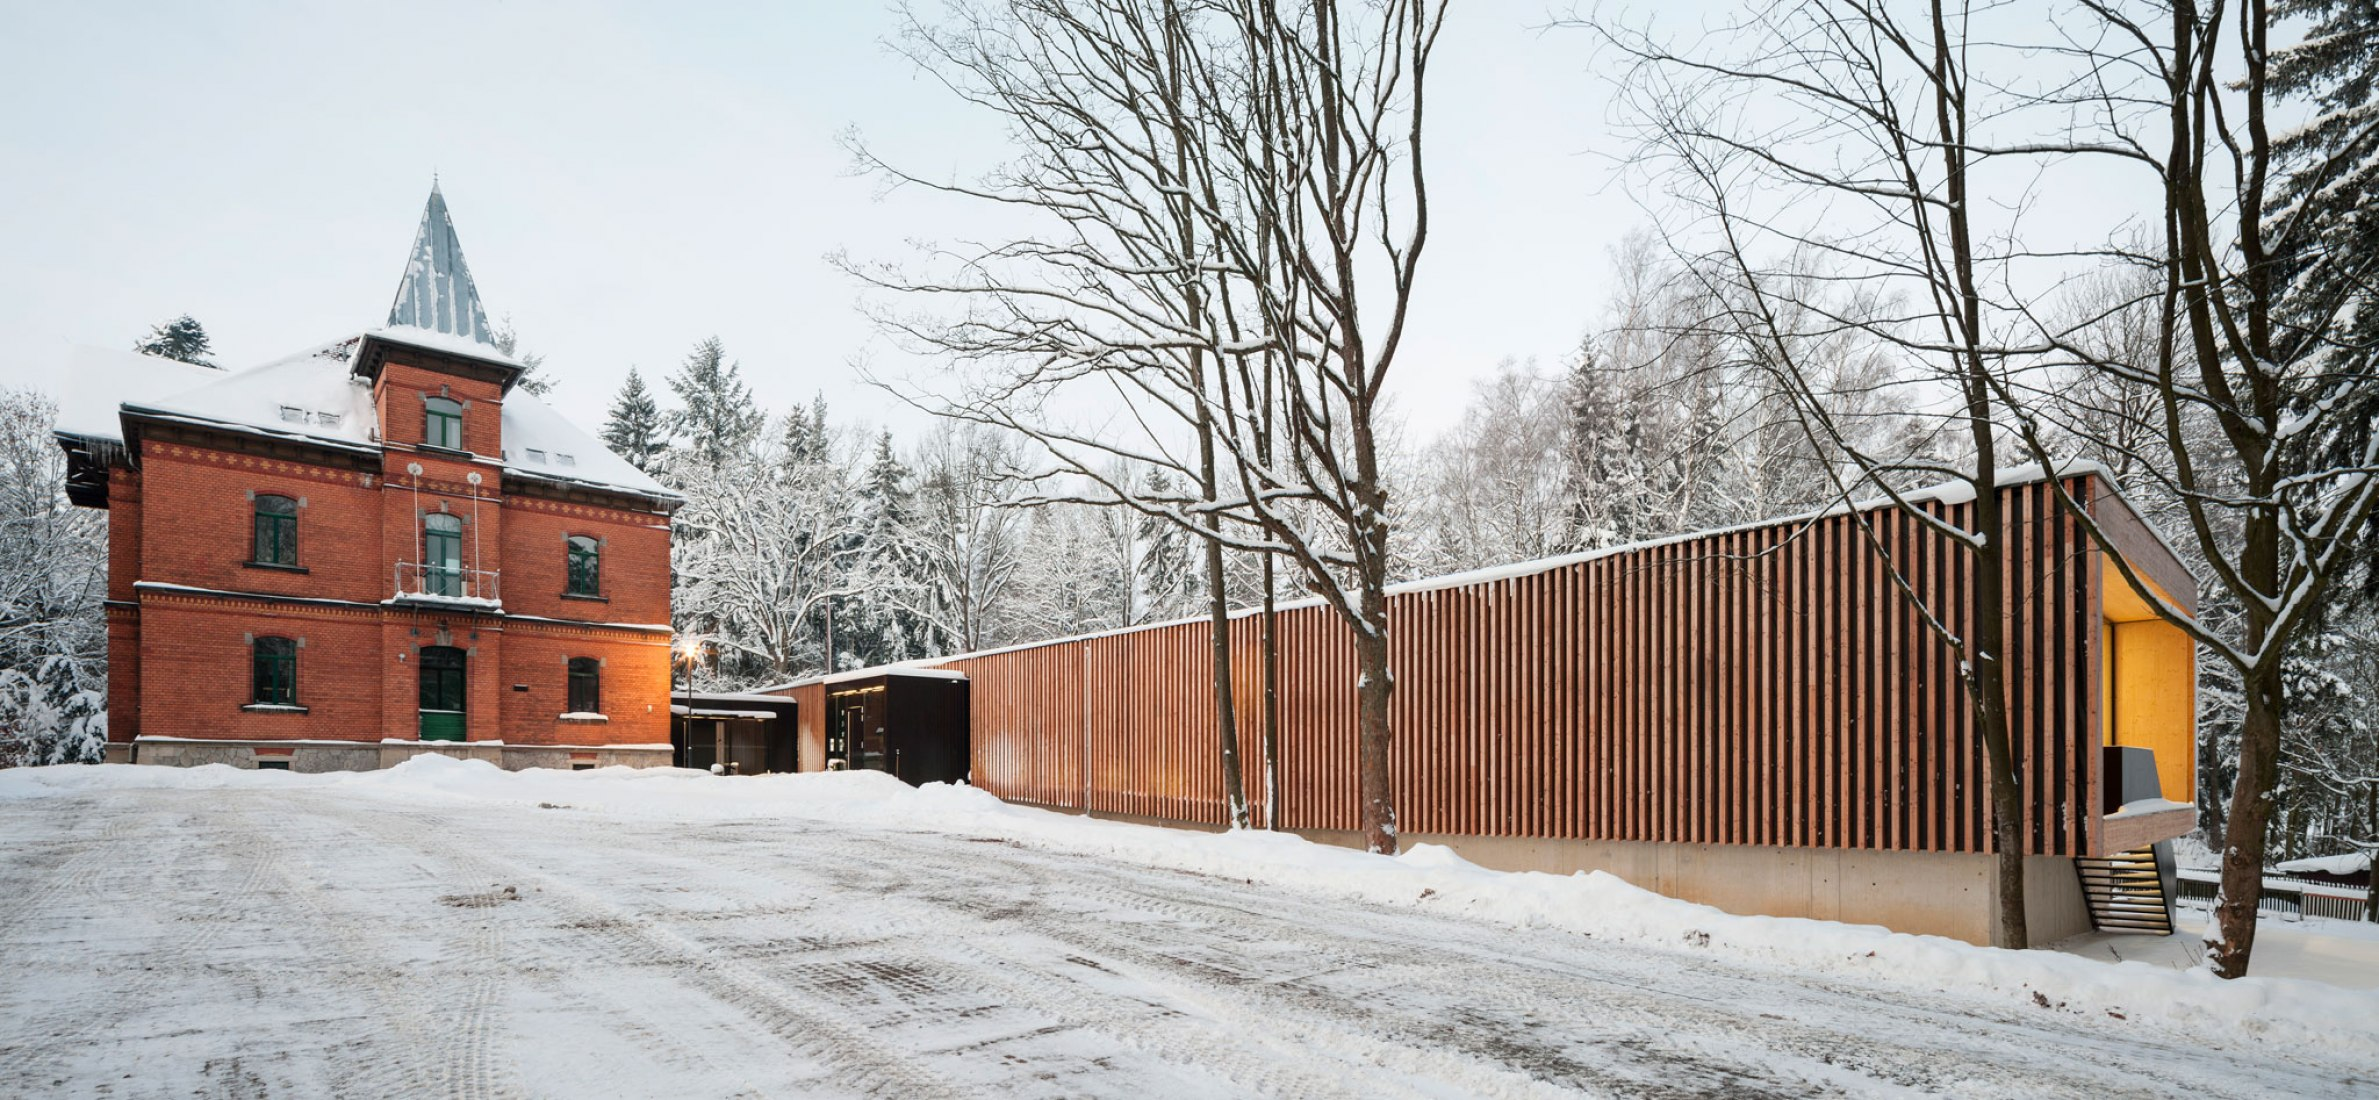 Community center in Selb by Beer Architektur Städtebau. Photograph by Fernando Alda.